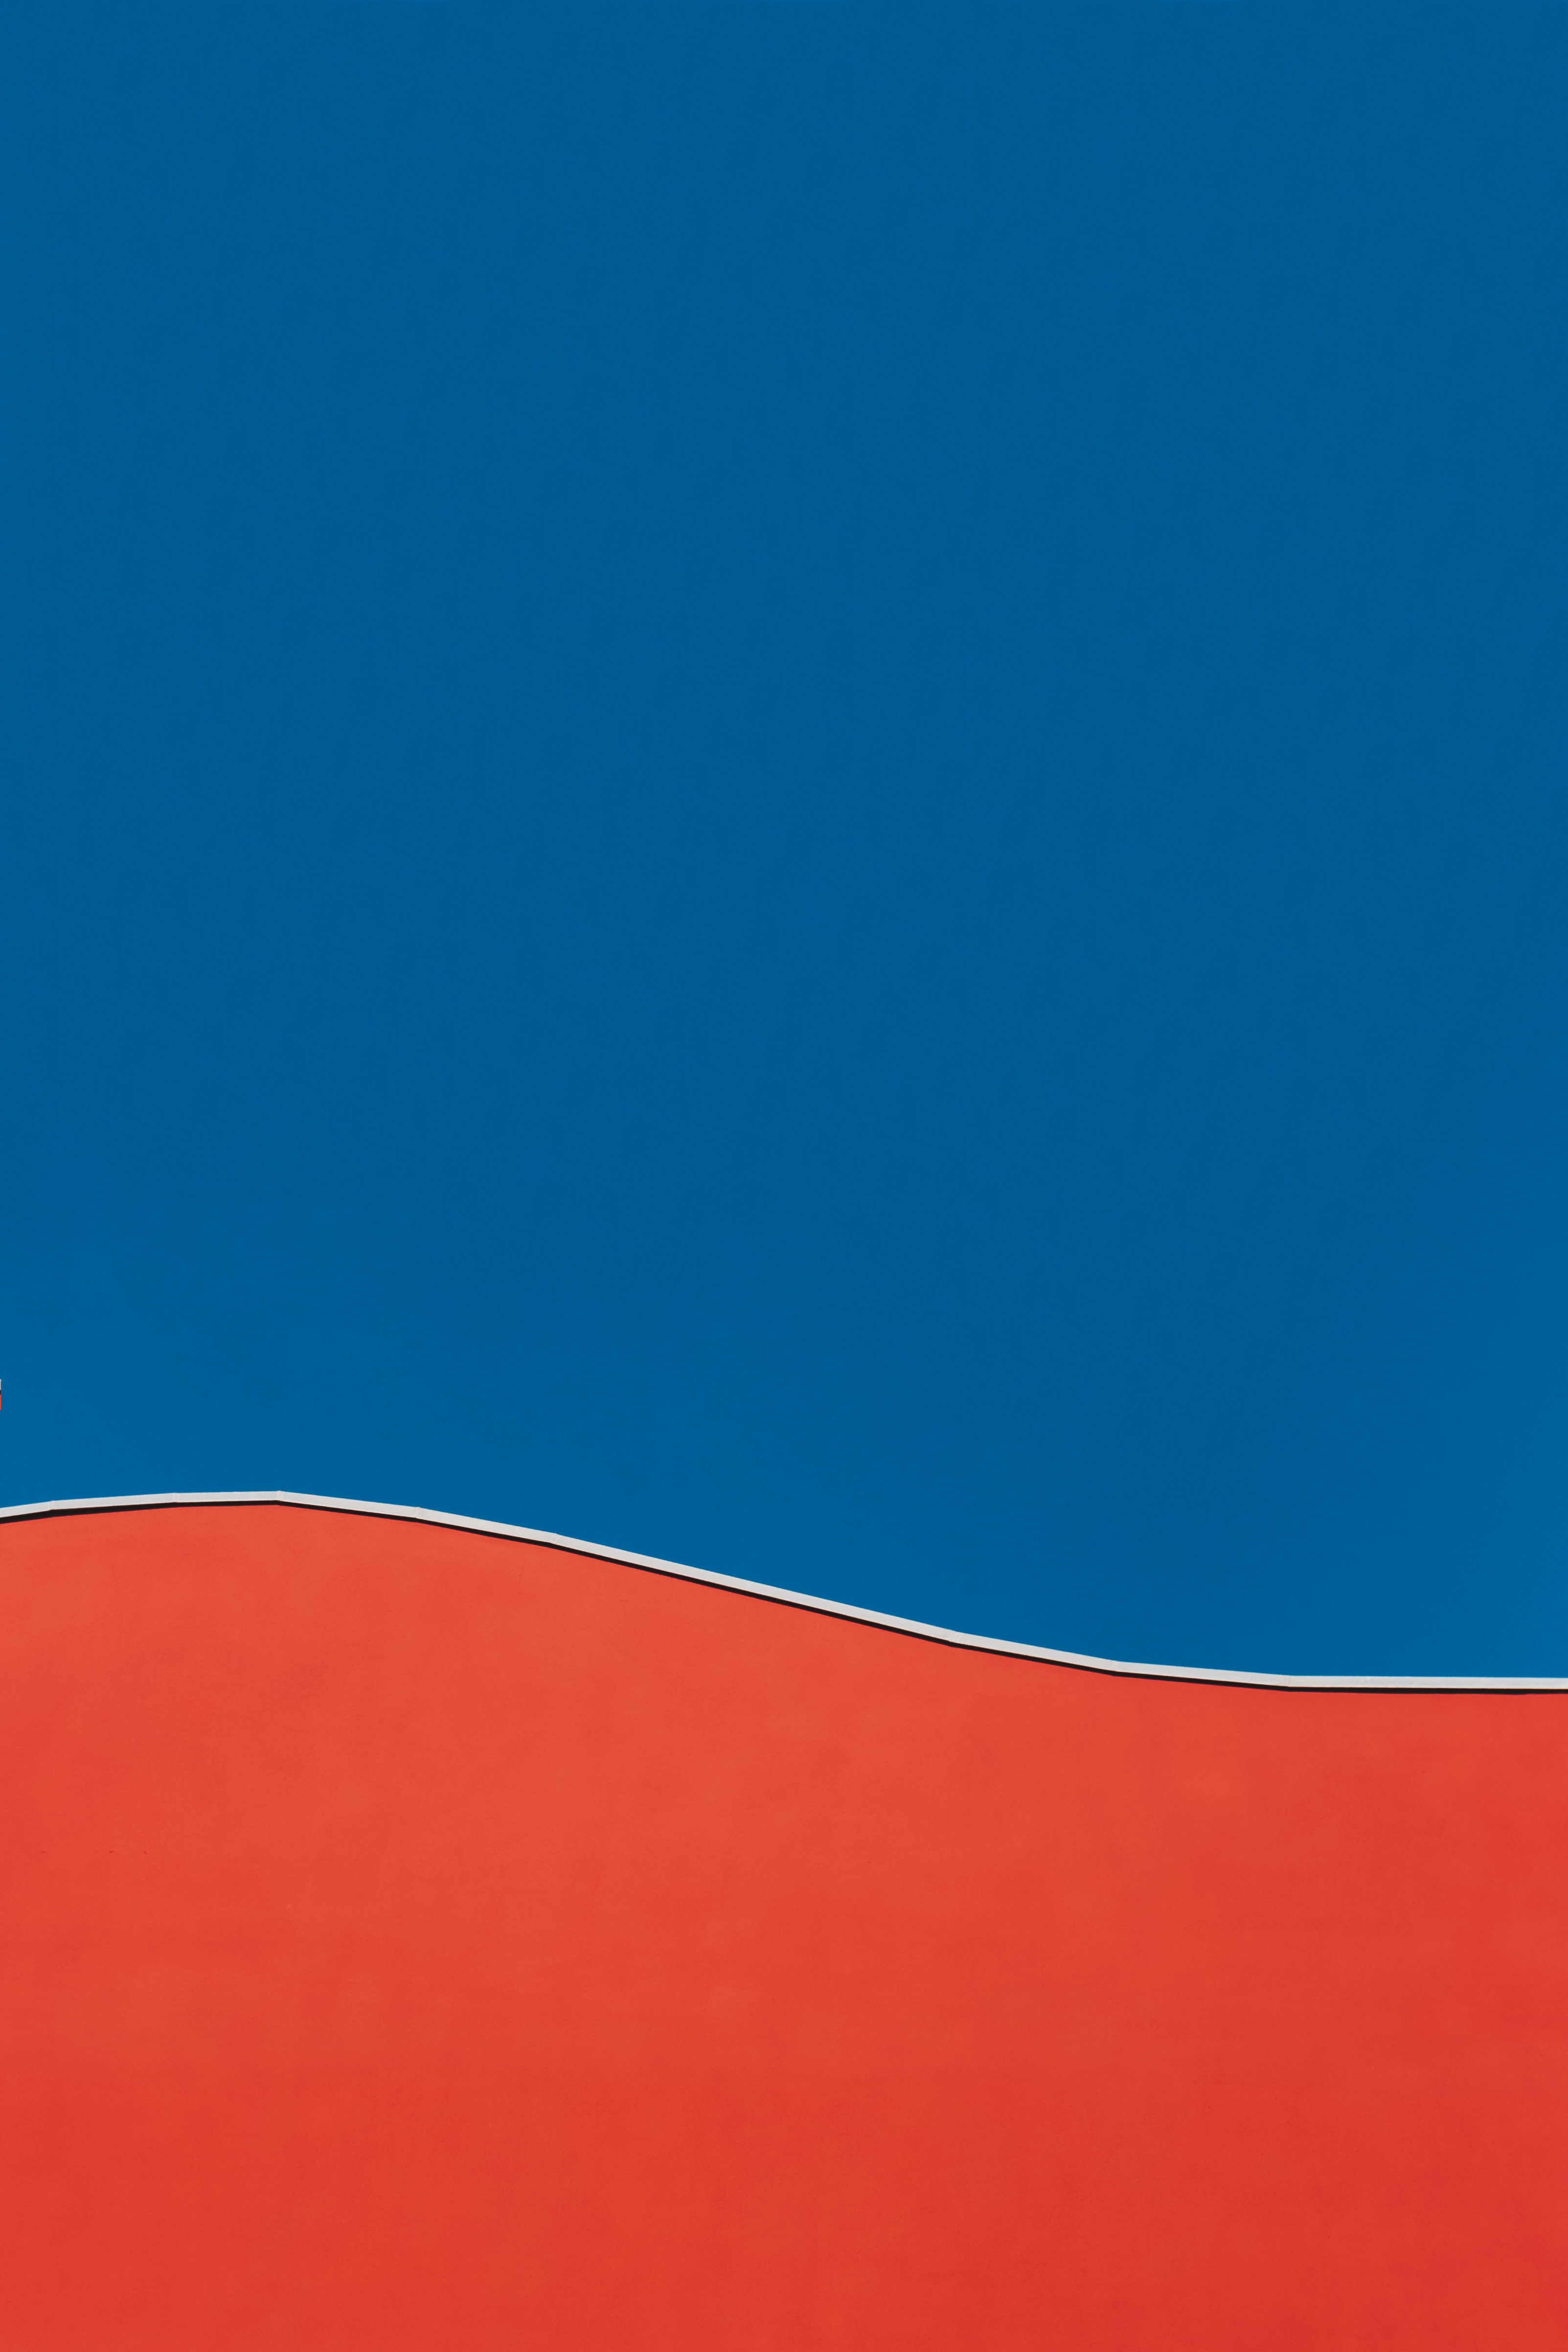 Blue and Red Illustration, Abstract, Outdoors, Landscape, Minimalism, HQ Photo